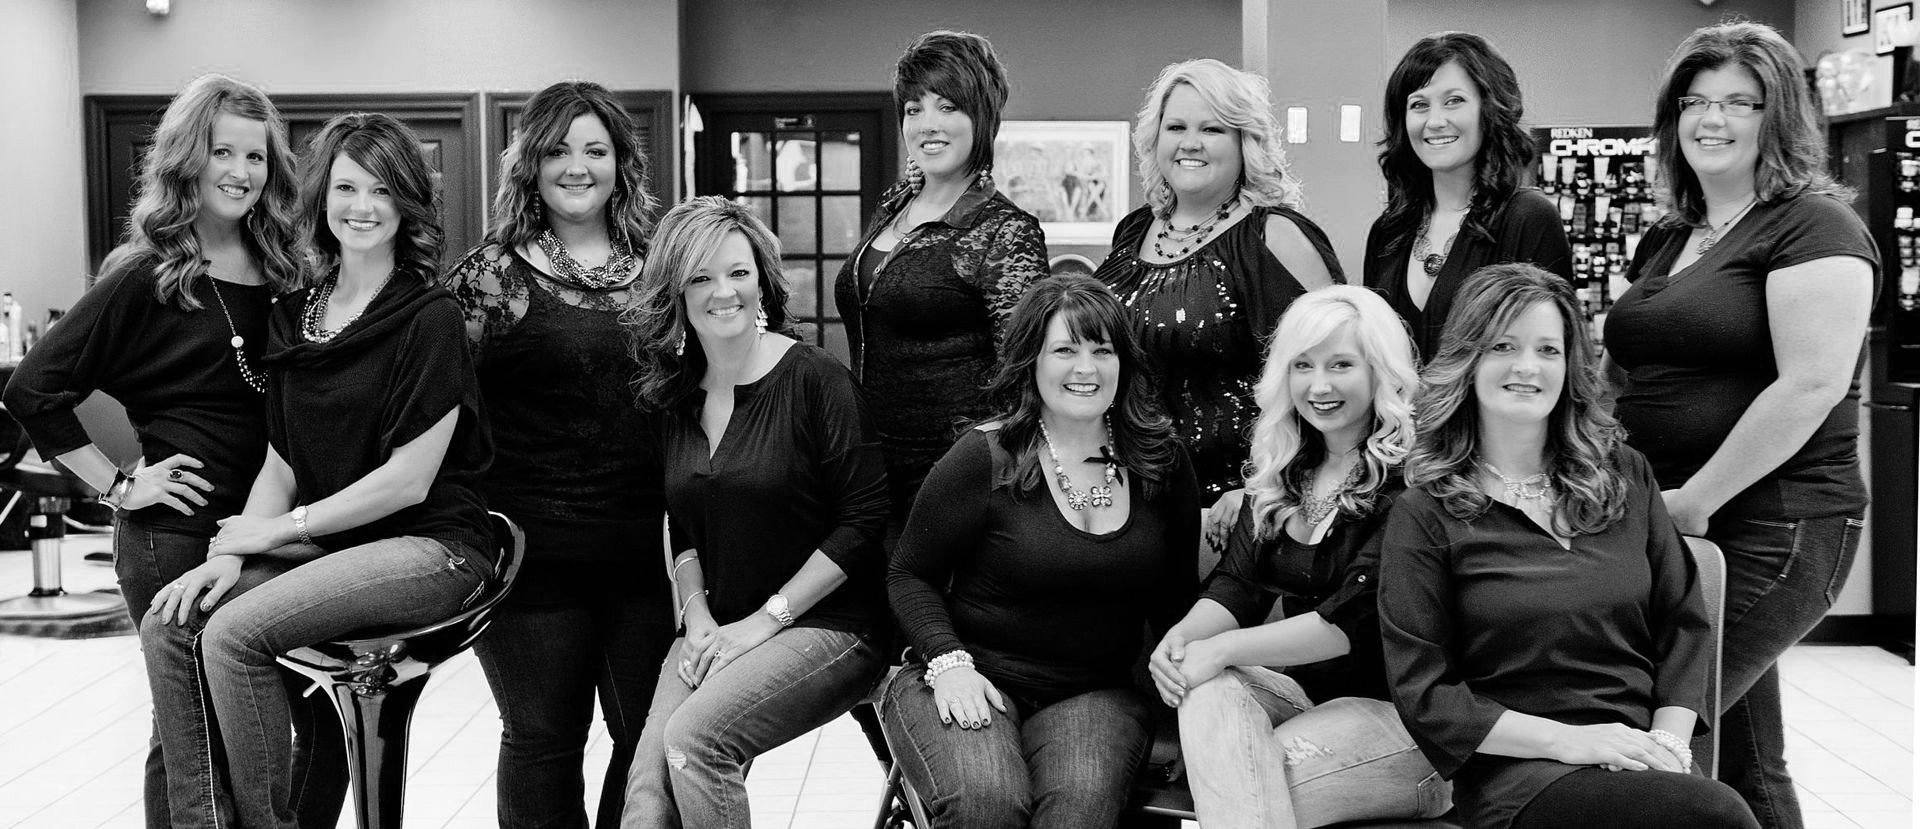 The staff at Headshop Family Haircare